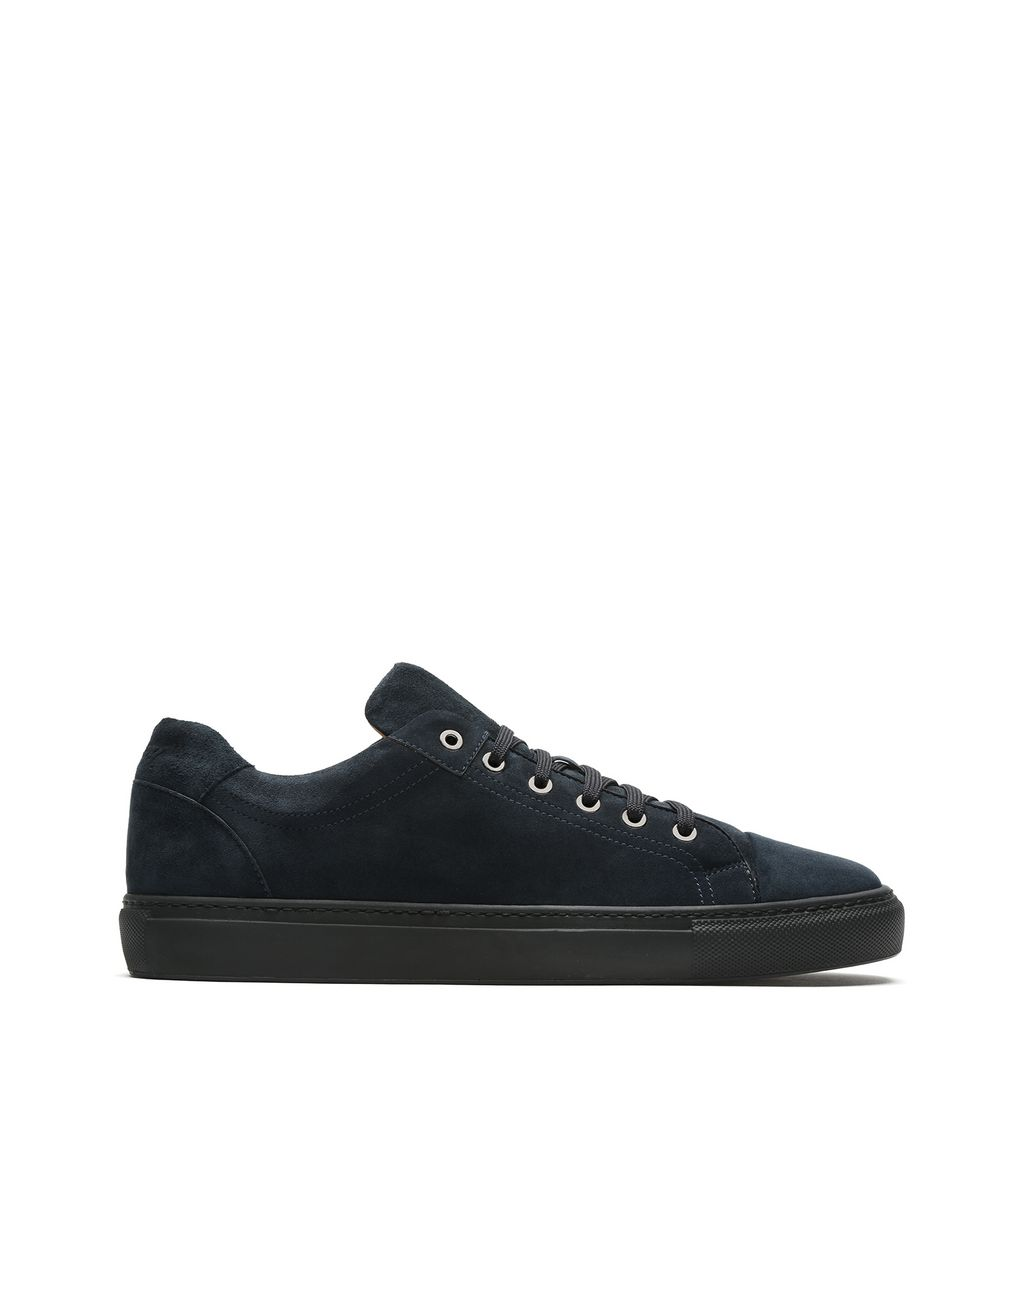 BRIONI Marineblaue Sneakers Sneaker [*** pickupInStoreShippingNotGuaranteed_info ***] f